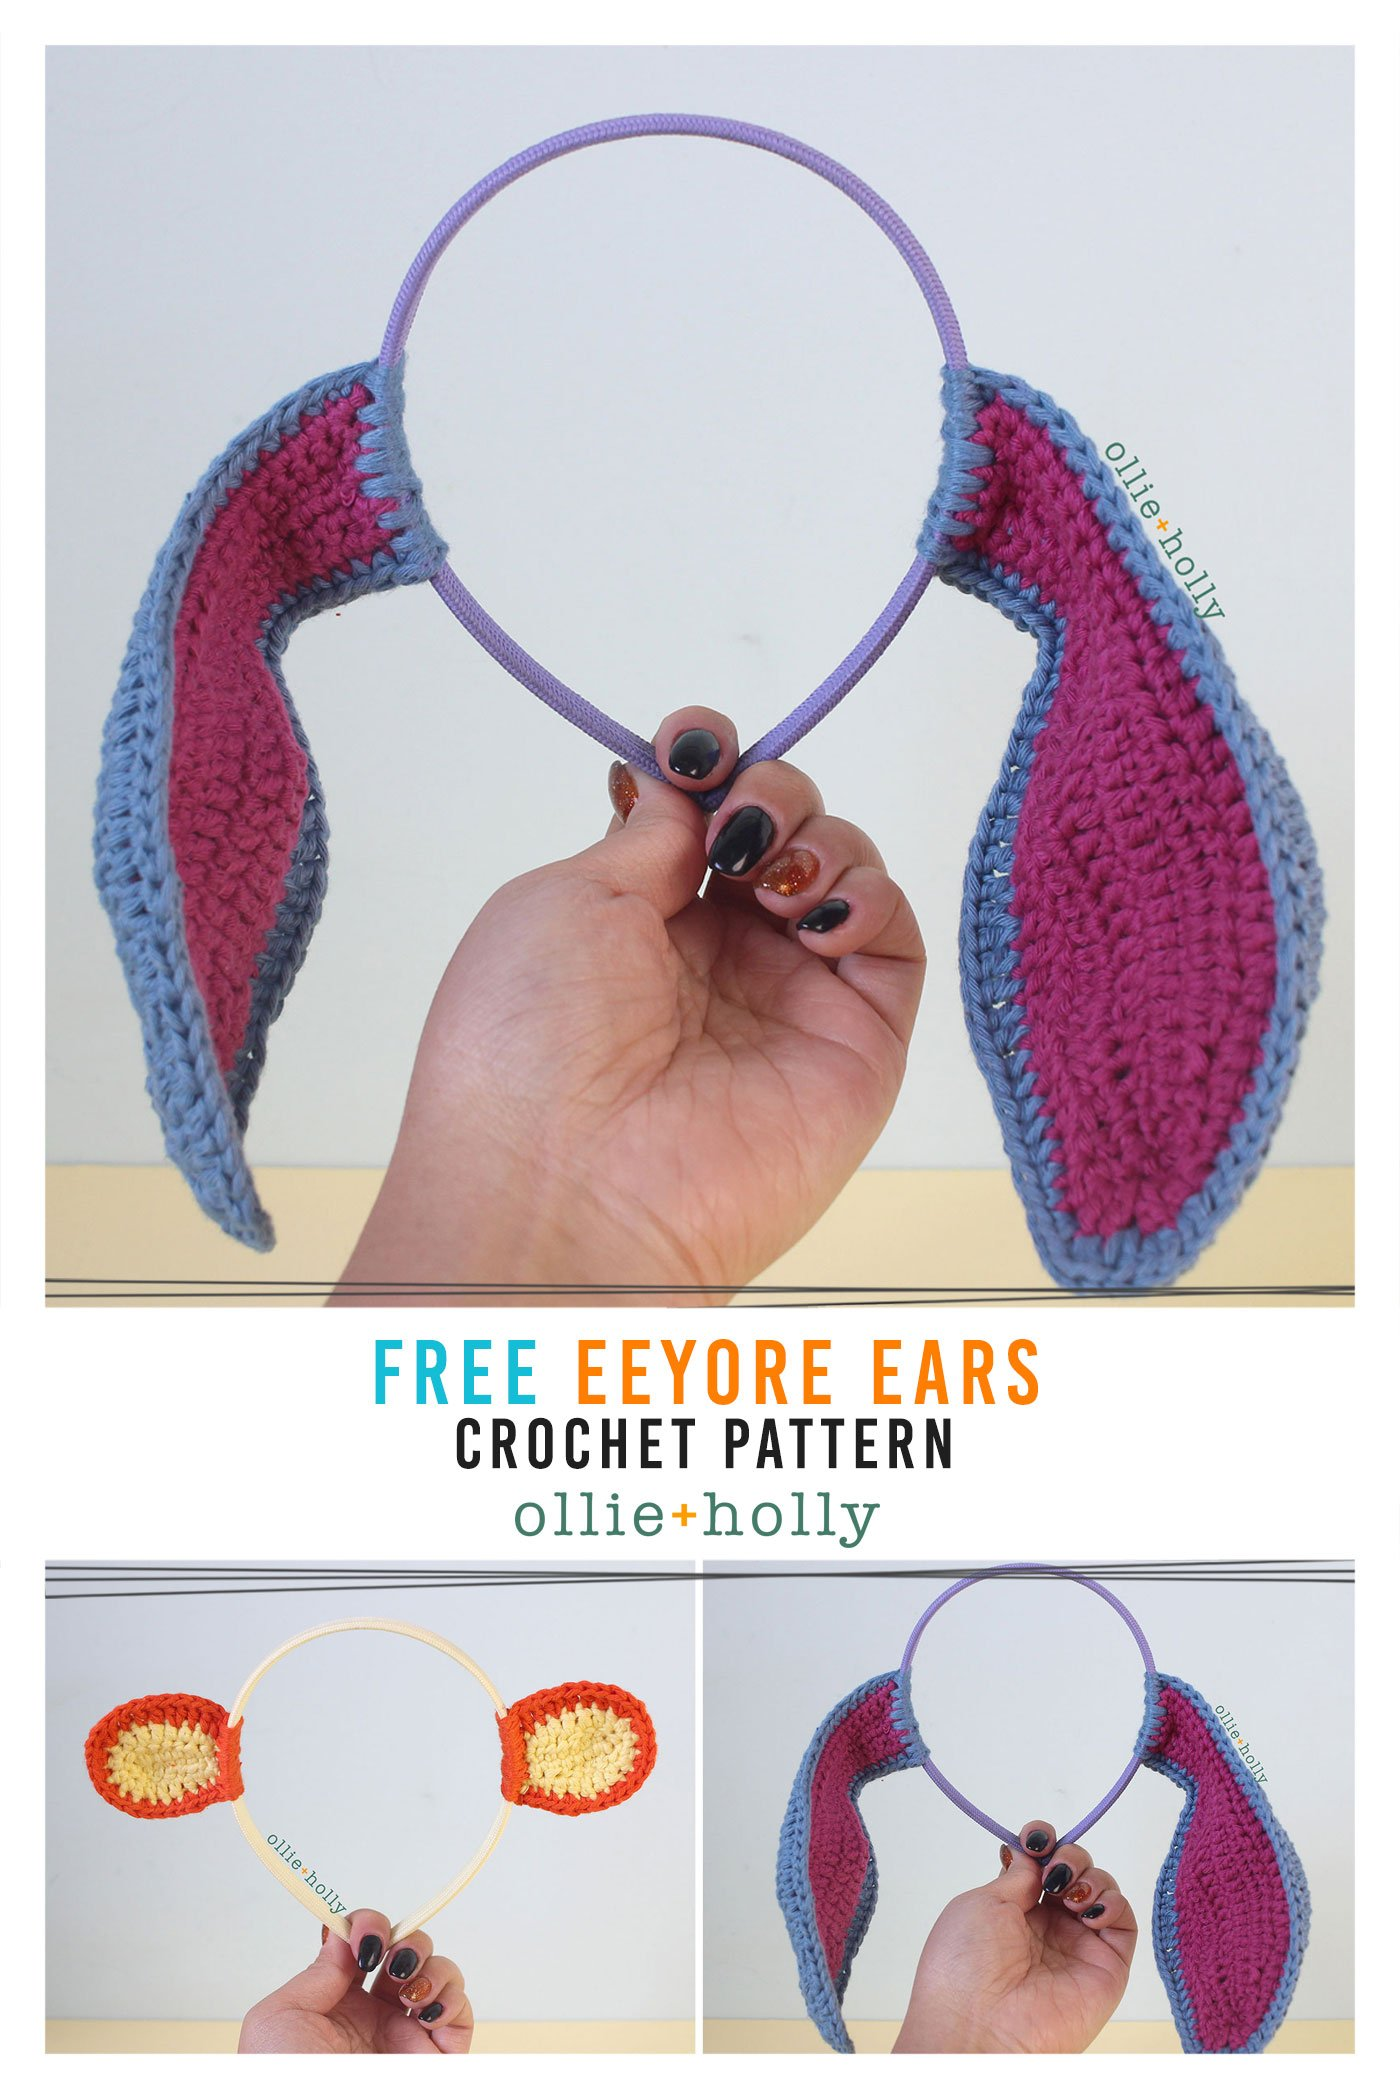 Free Eeyore (Winnie the Pooh) Crochet DIY Headband Disney Ears Pattern